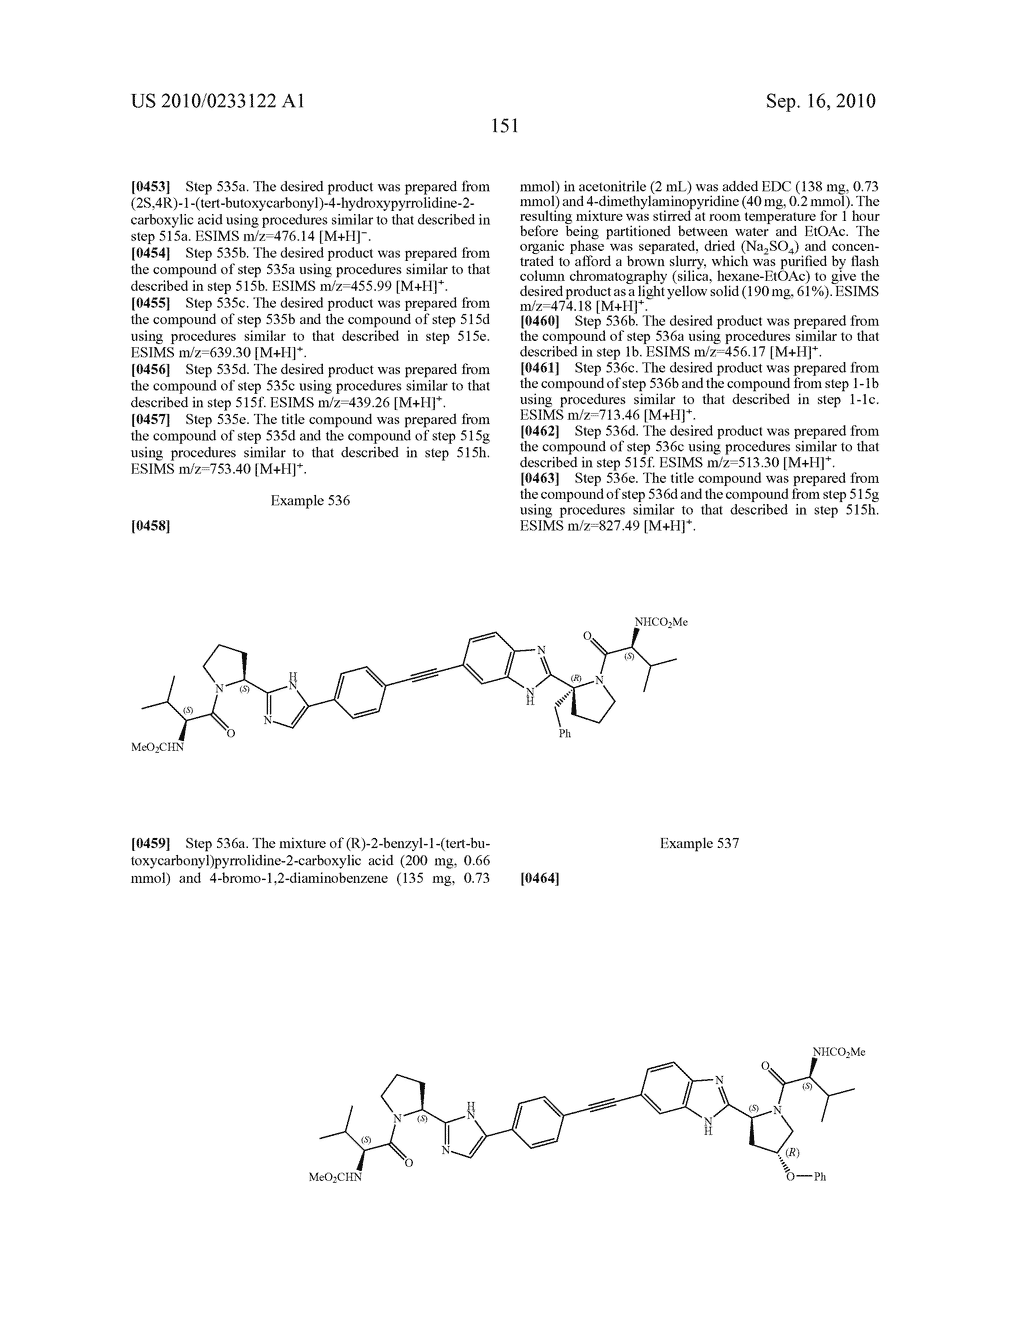 NOVEL BENZIMIDAZOLE DERIVATIVES - diagram, schematic, and image 152